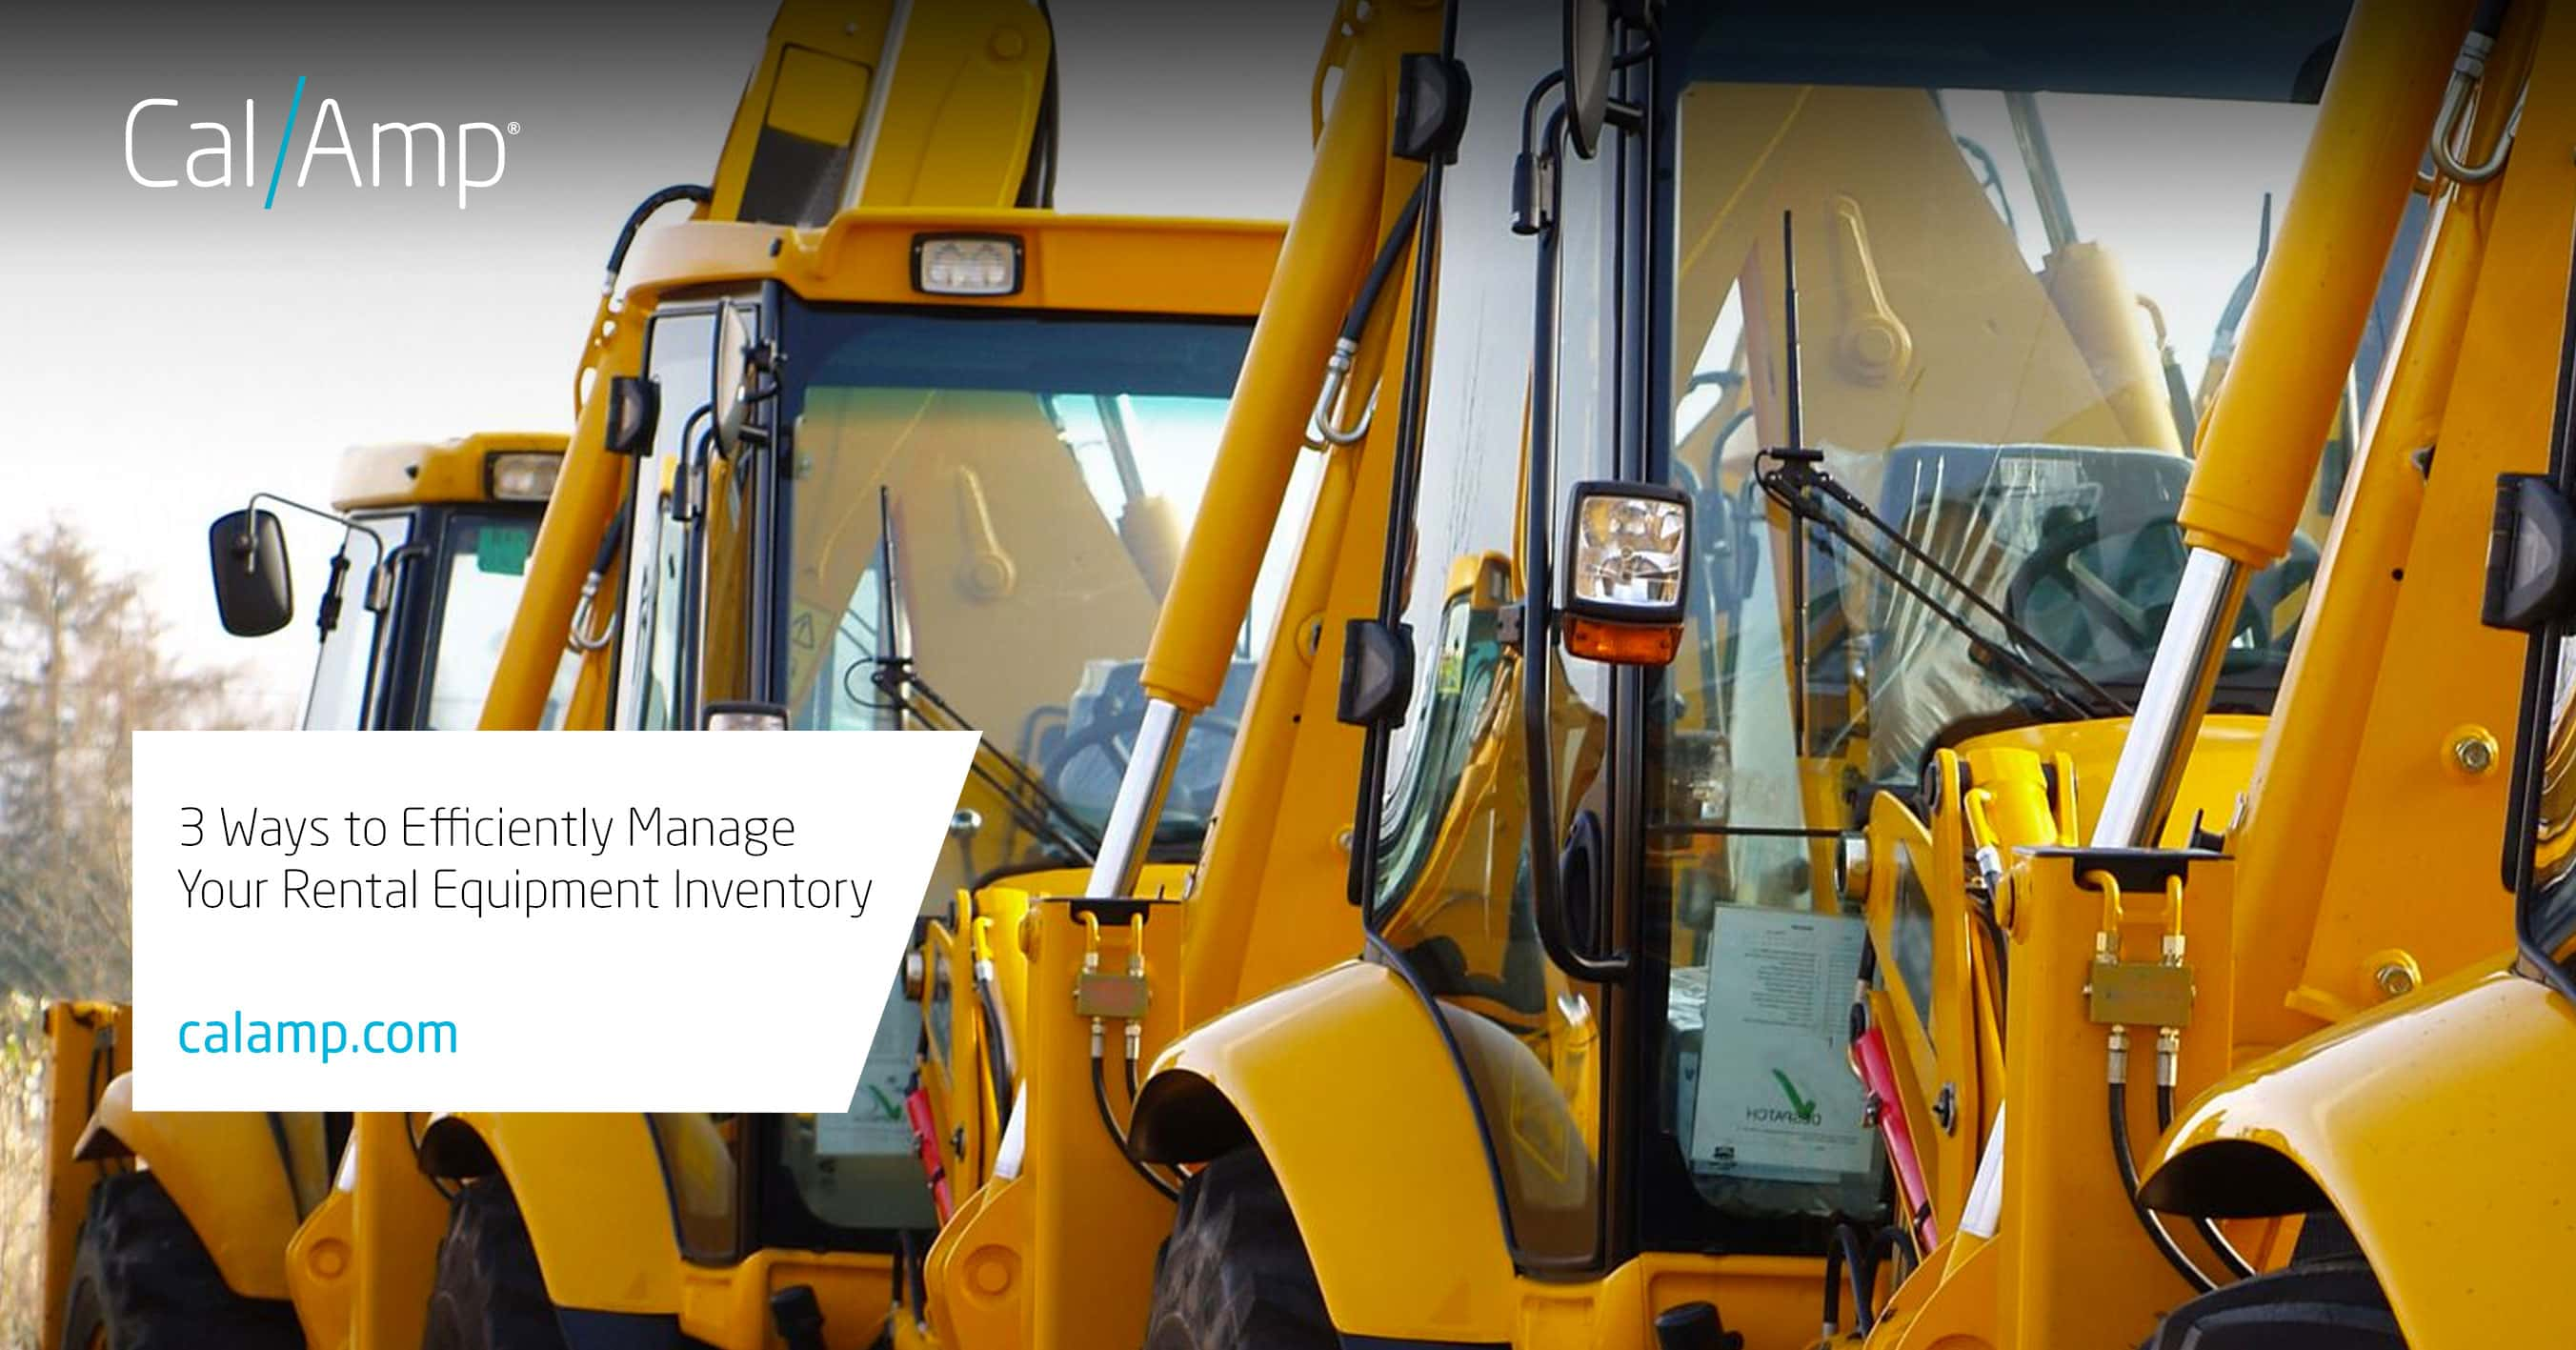 3 Ways to Efficiently Manage Your Rental Equipment Inventory